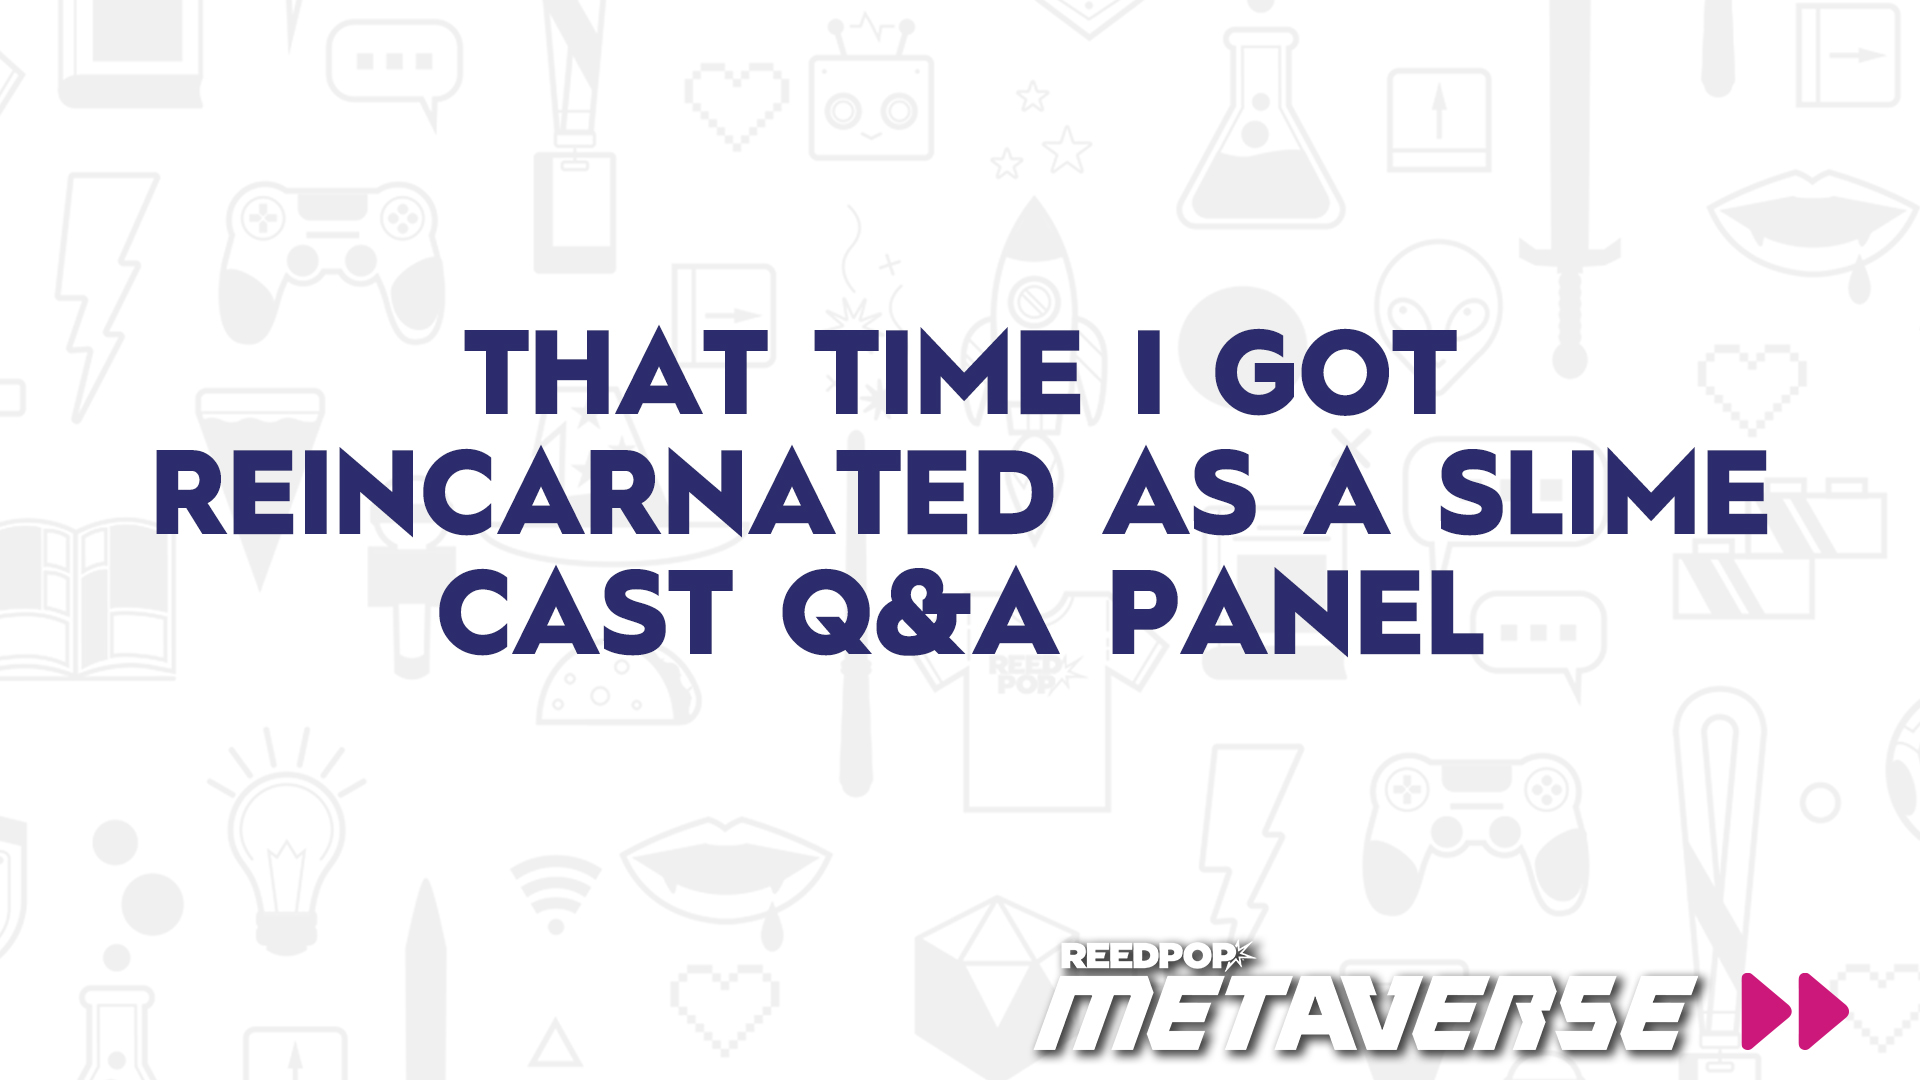 Image for That Time I Got Reincarnated as a Slime Cast Q&A Panel